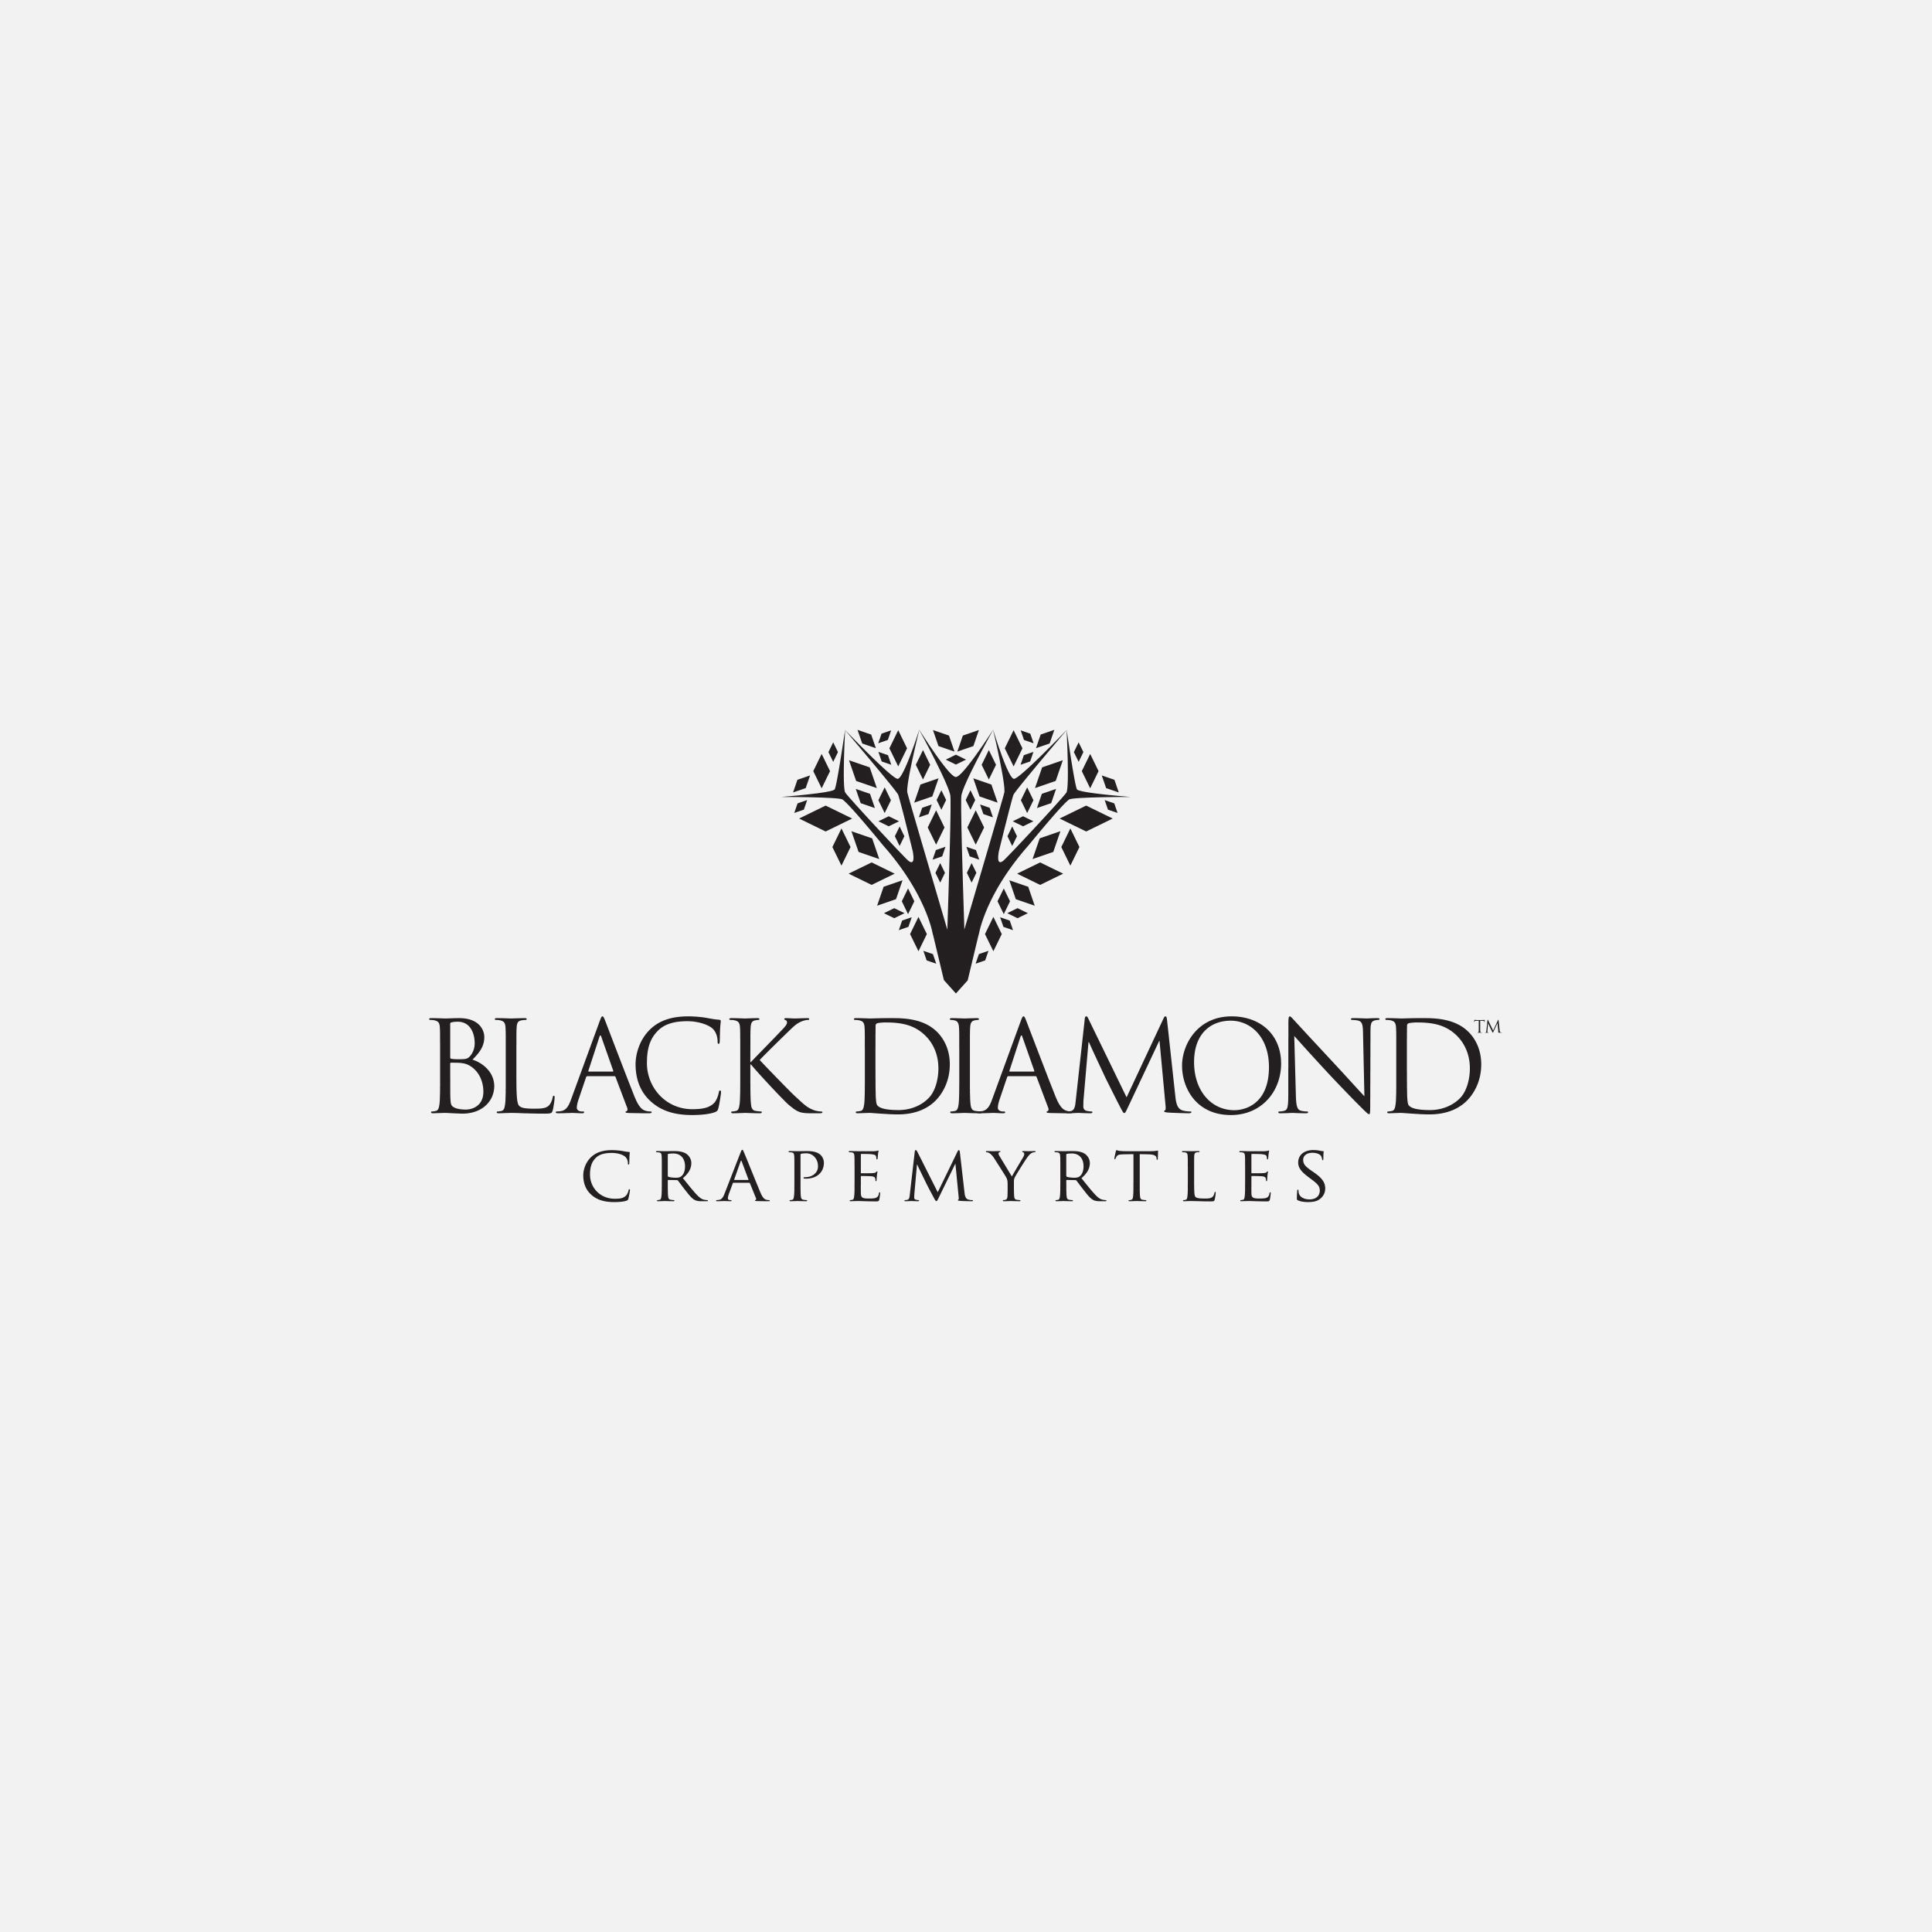 Black Diamond Crapemyrtles logo